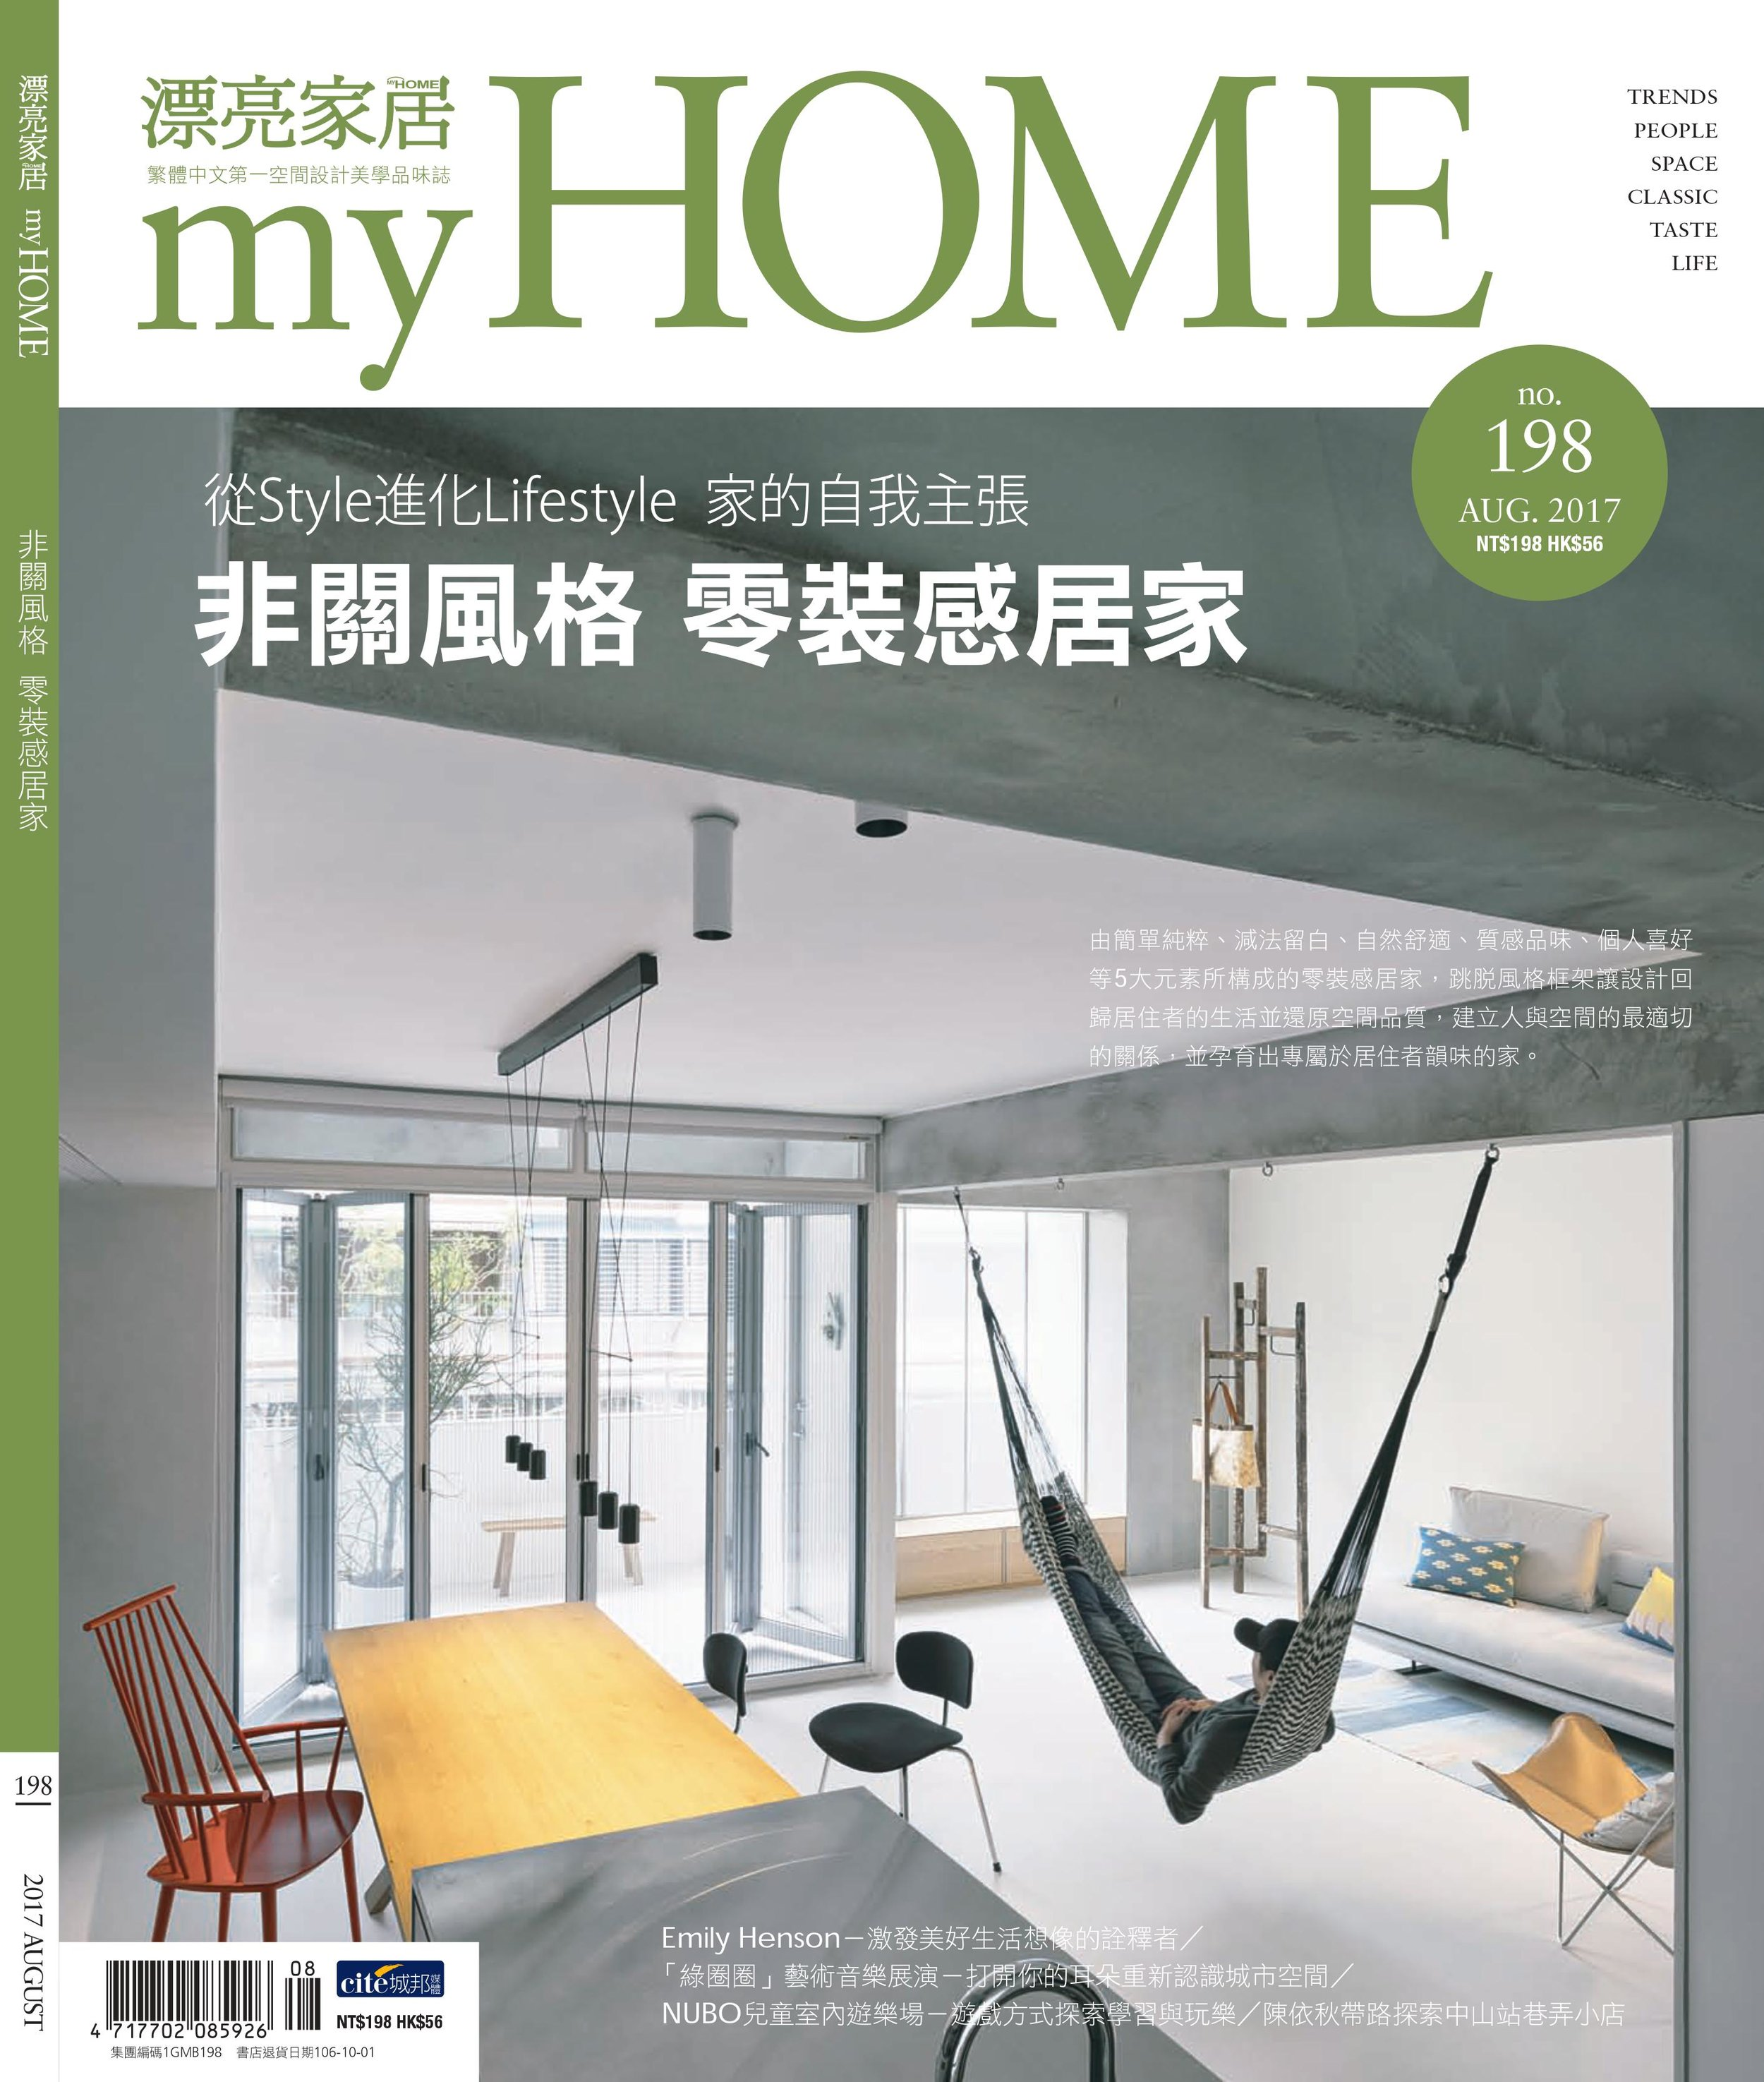 7. My Home Magazine (1).jpg